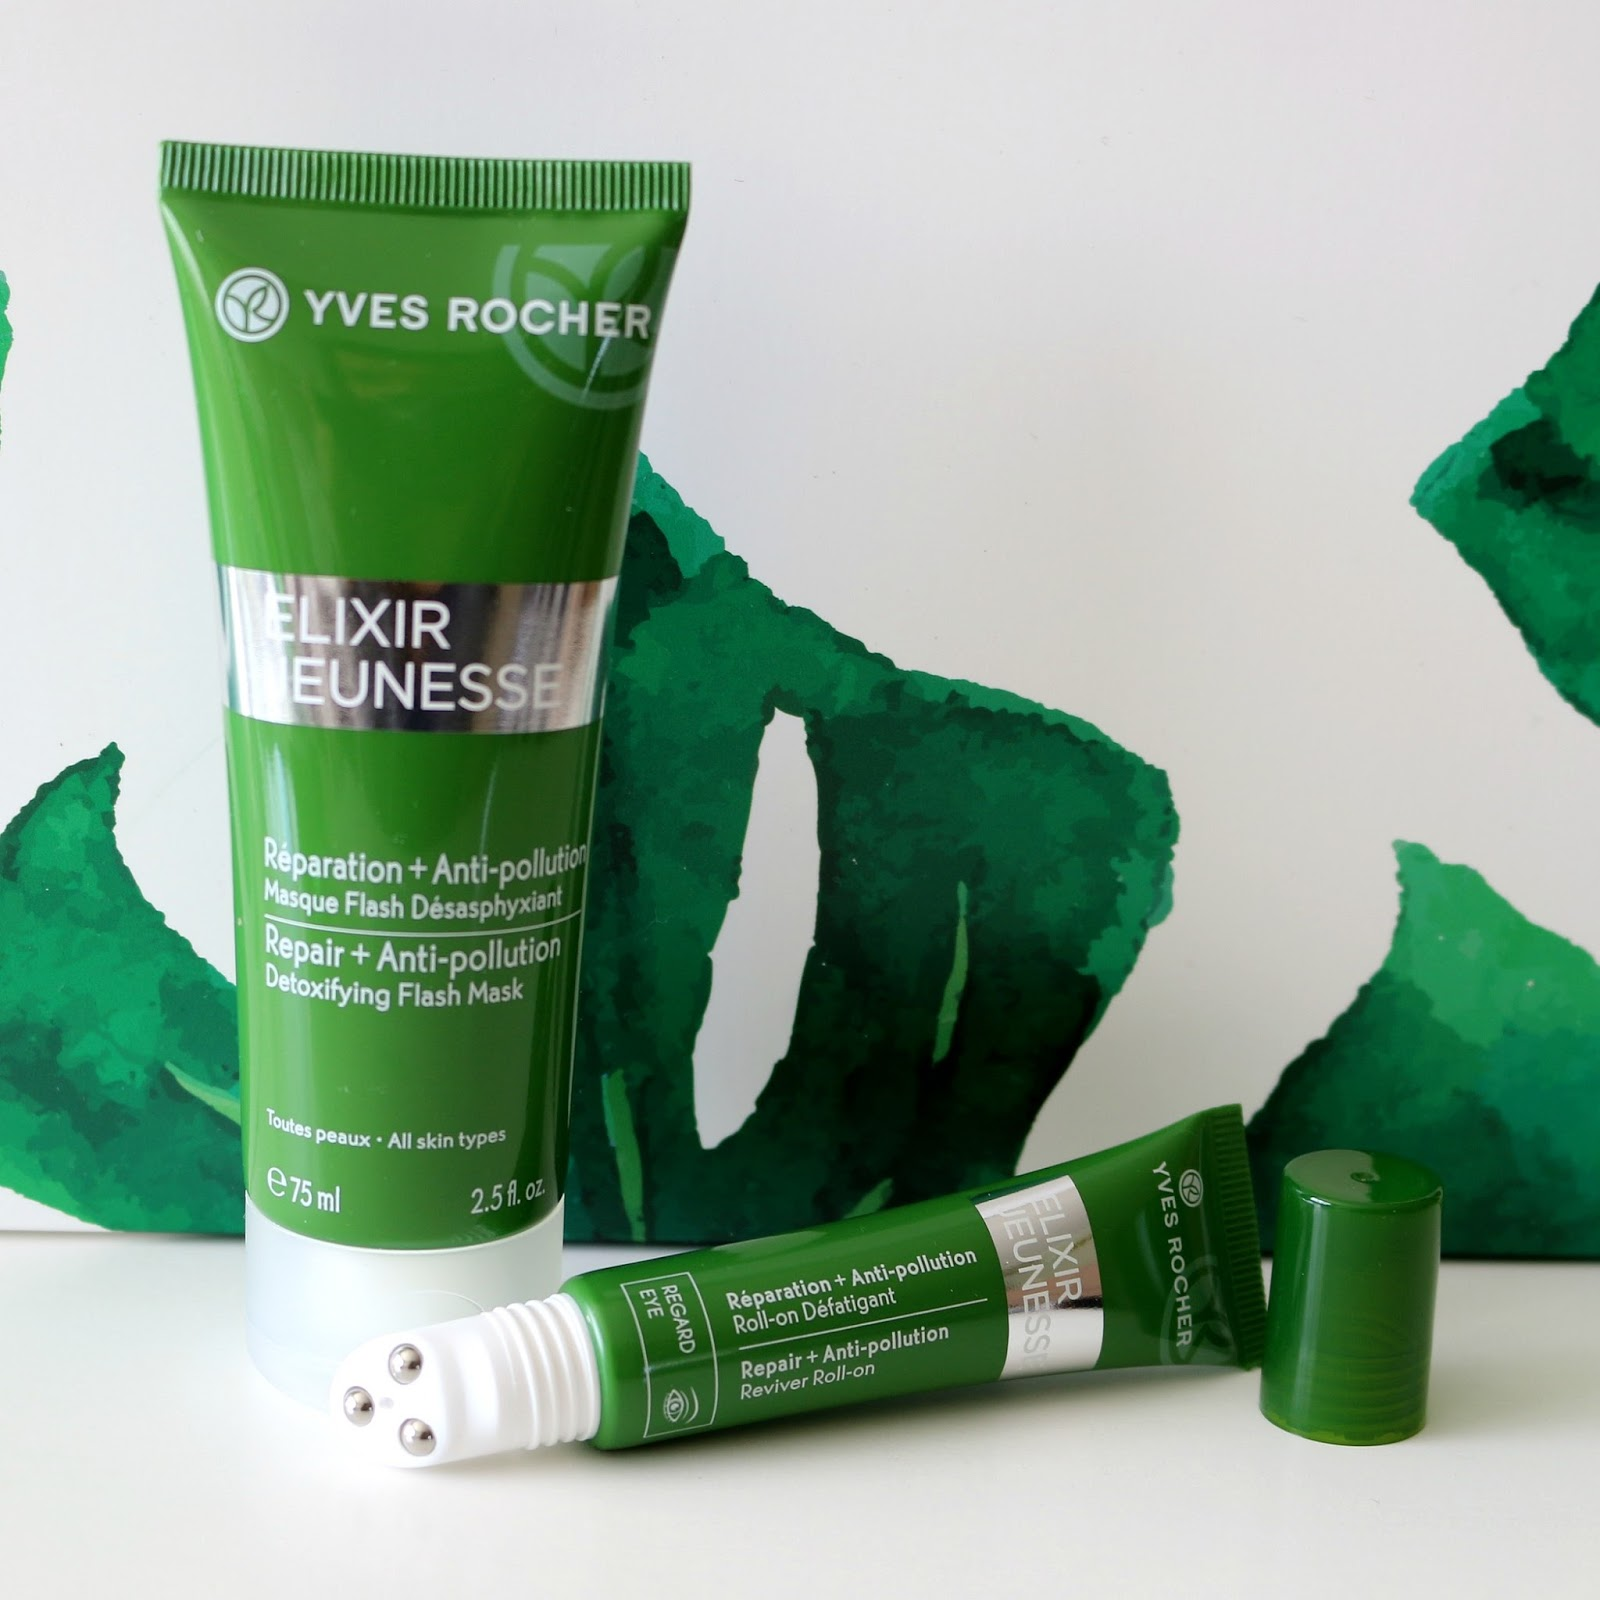 yves rocher elixir jeunesse repair anti-pollution detoxifying flash mask reviver roll-on